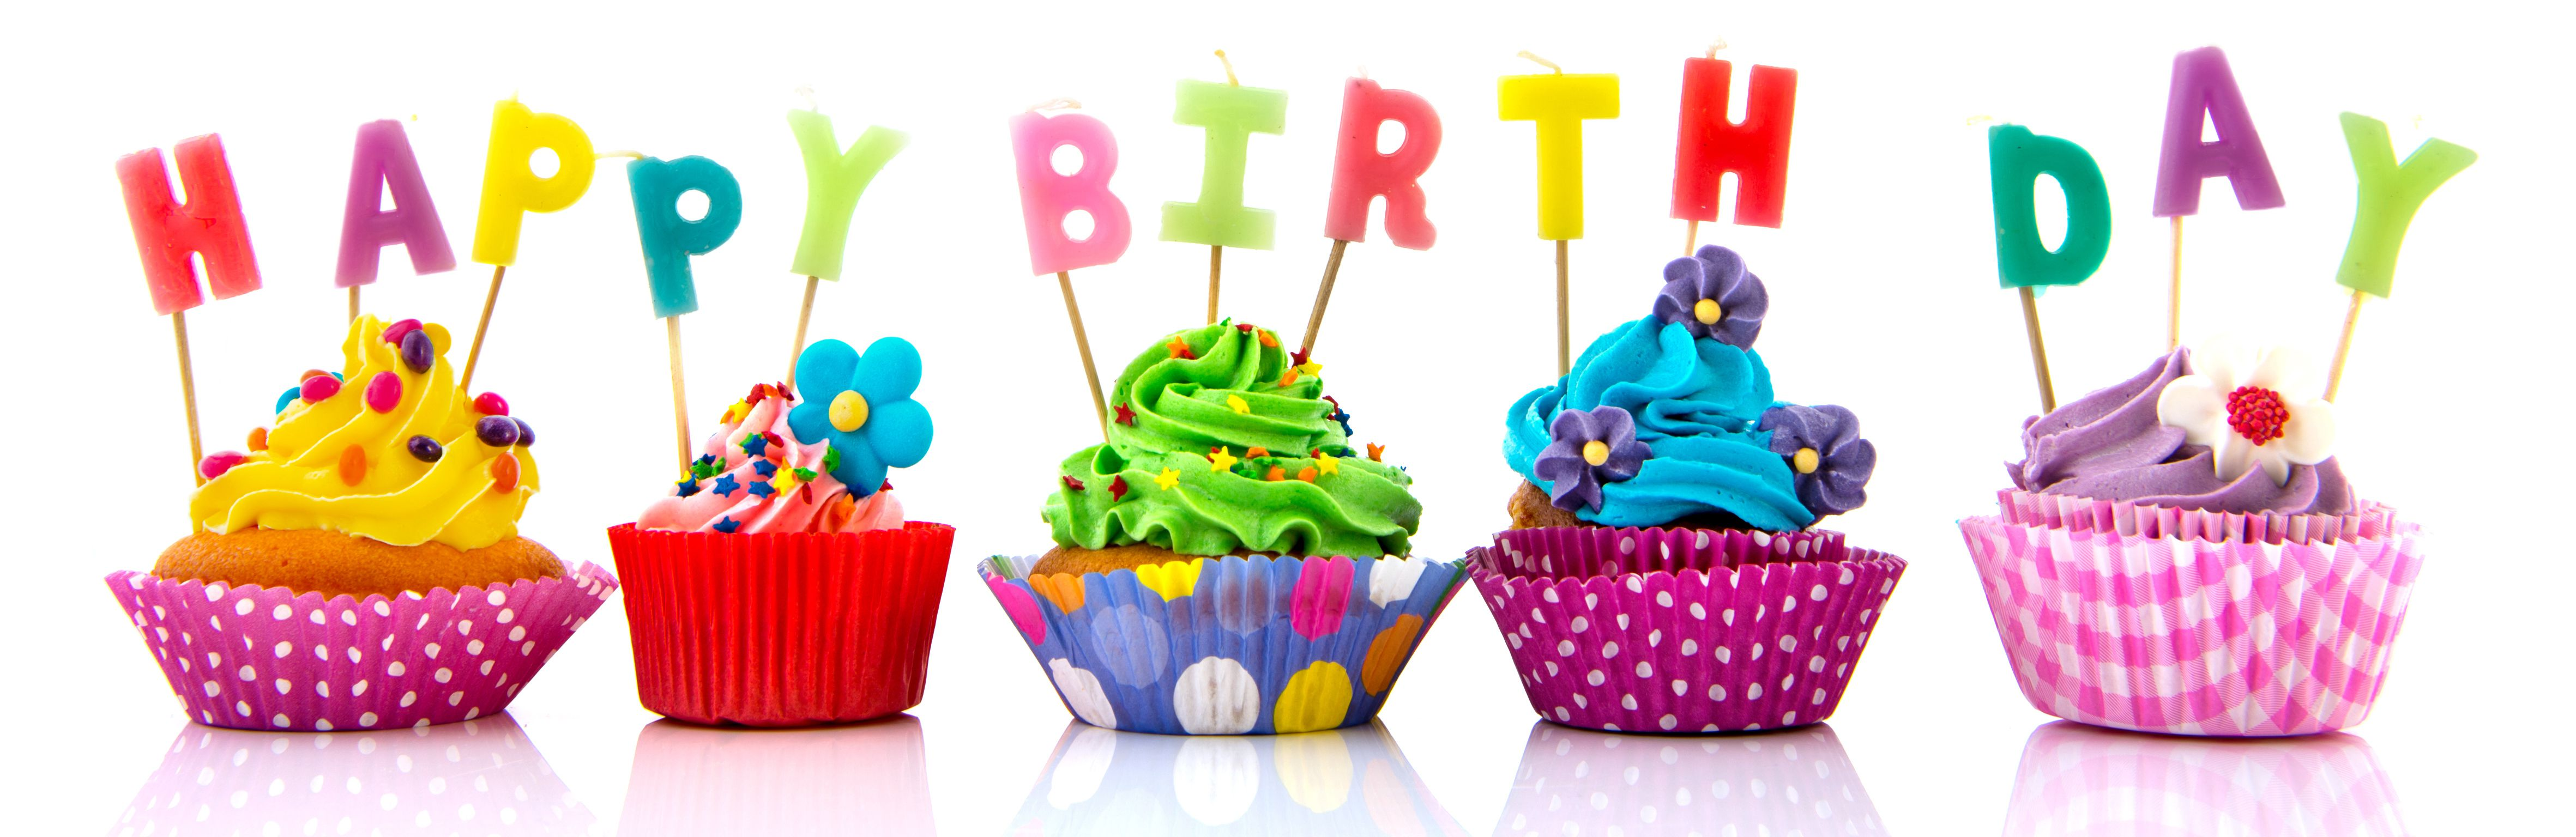 happy birthday images for facebook ; Happy-Birthday-Colorful-Cupcake-Graphic-Share-On-Facebook